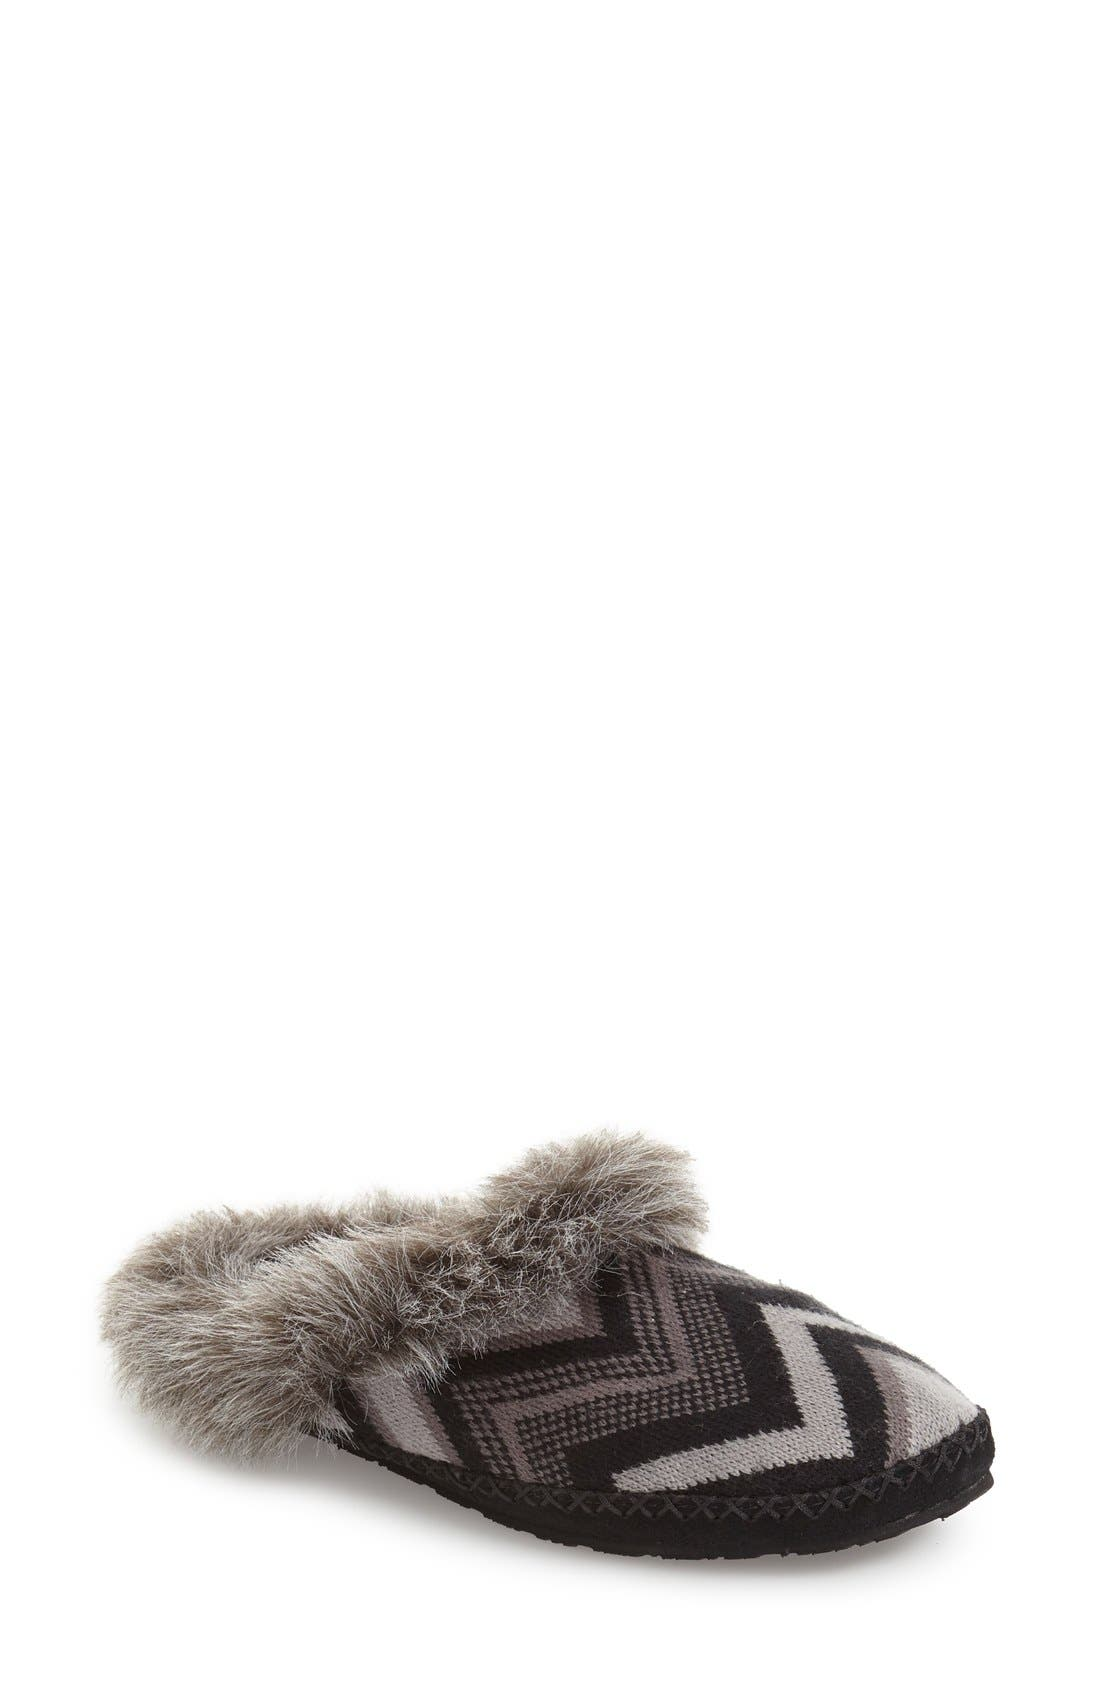 Sanuk Willow Pillow Faux Fur Mule Slipper (Women)